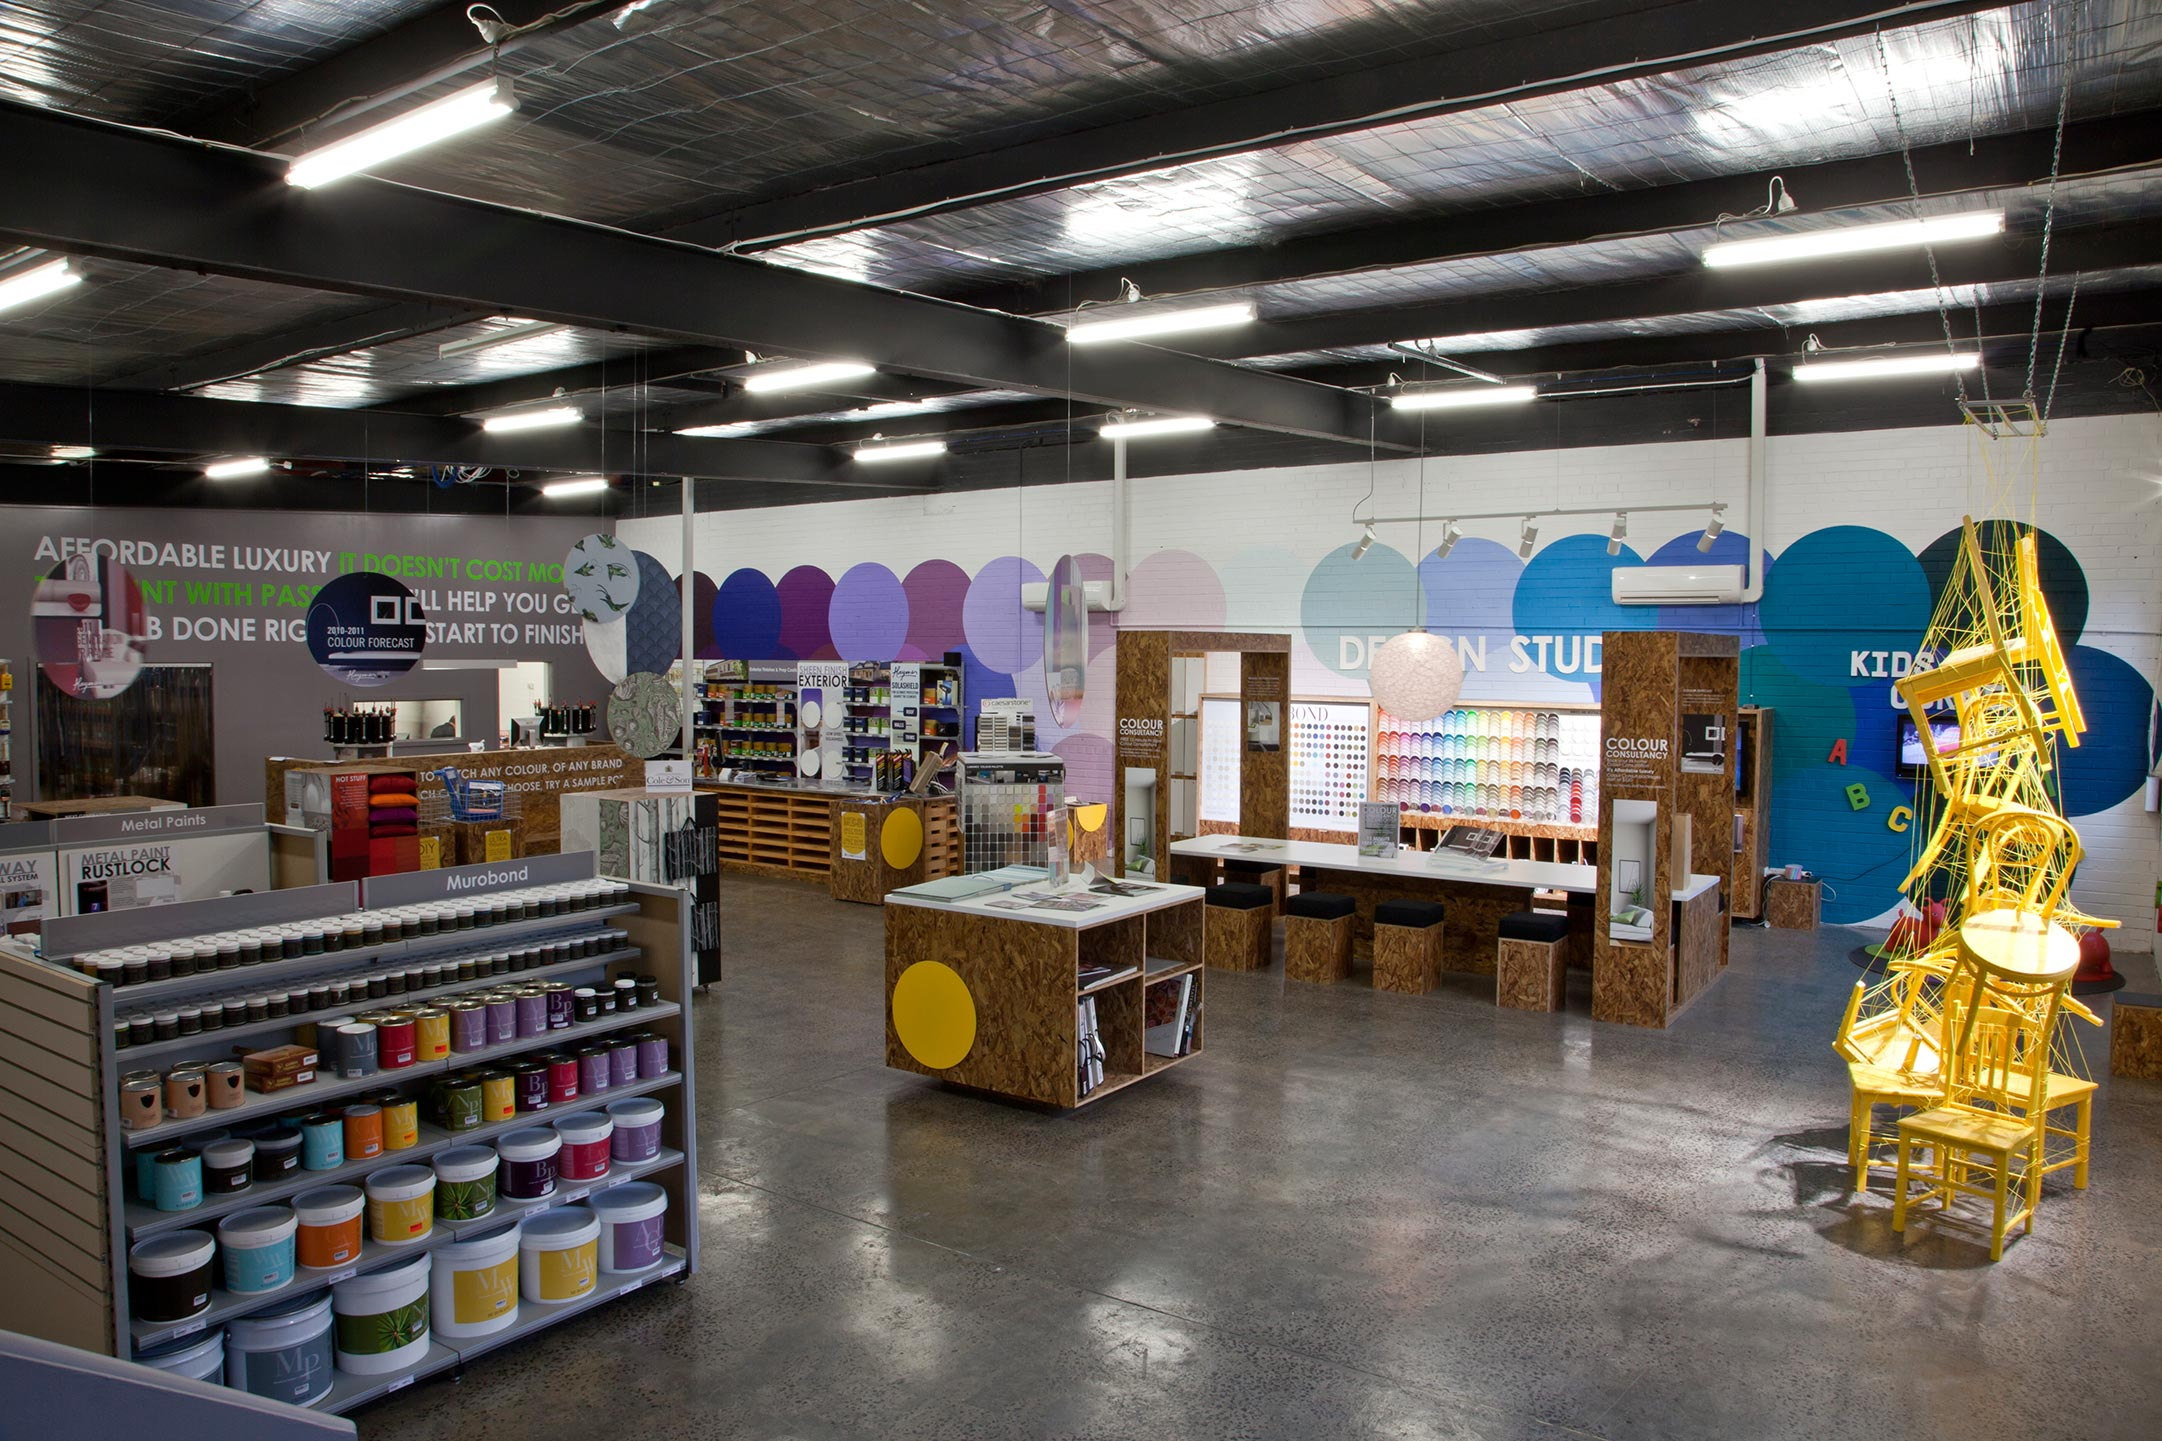 Top 12 interior design paints serpden for Homedepot colorsmartbybehr com paintstore